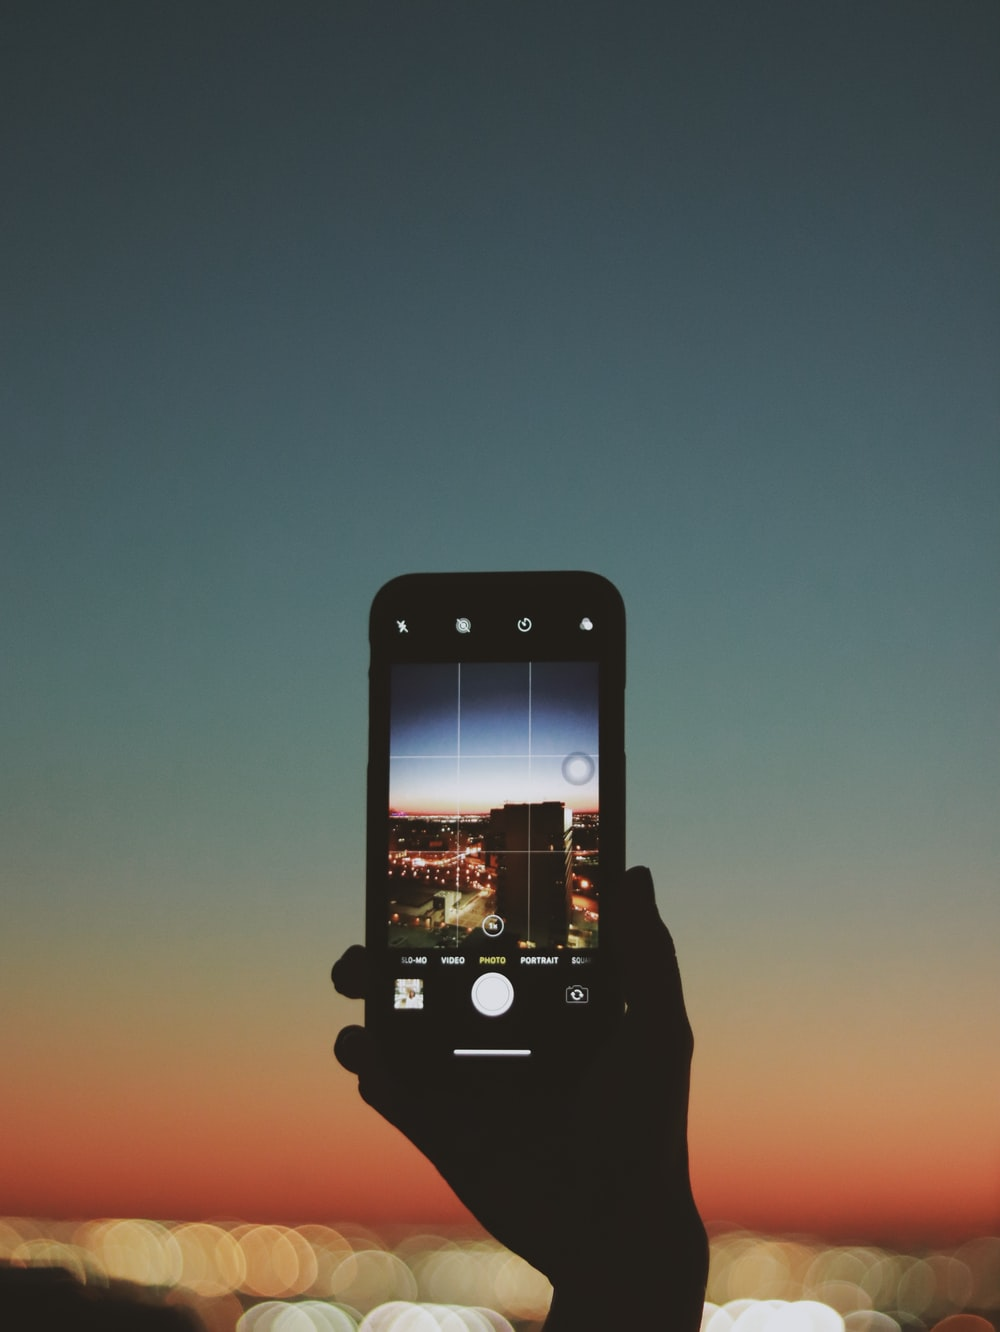 black iphone taking photo of city skyline during night time